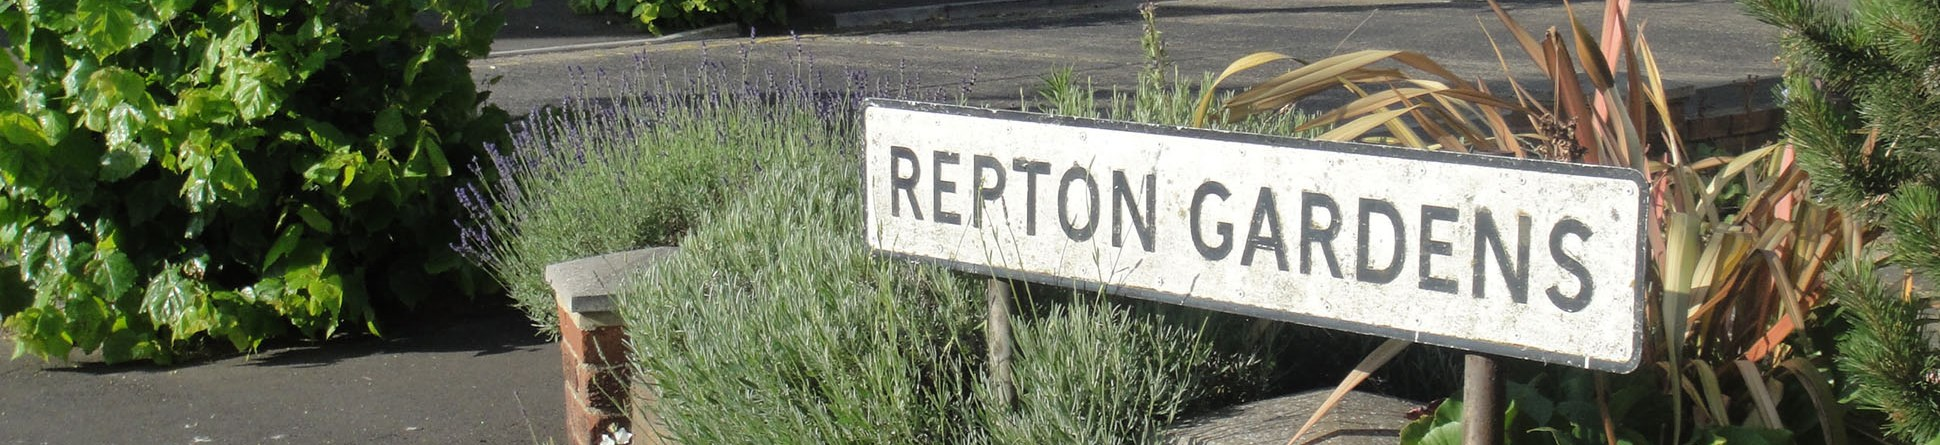 Street sign for Repton Gardens